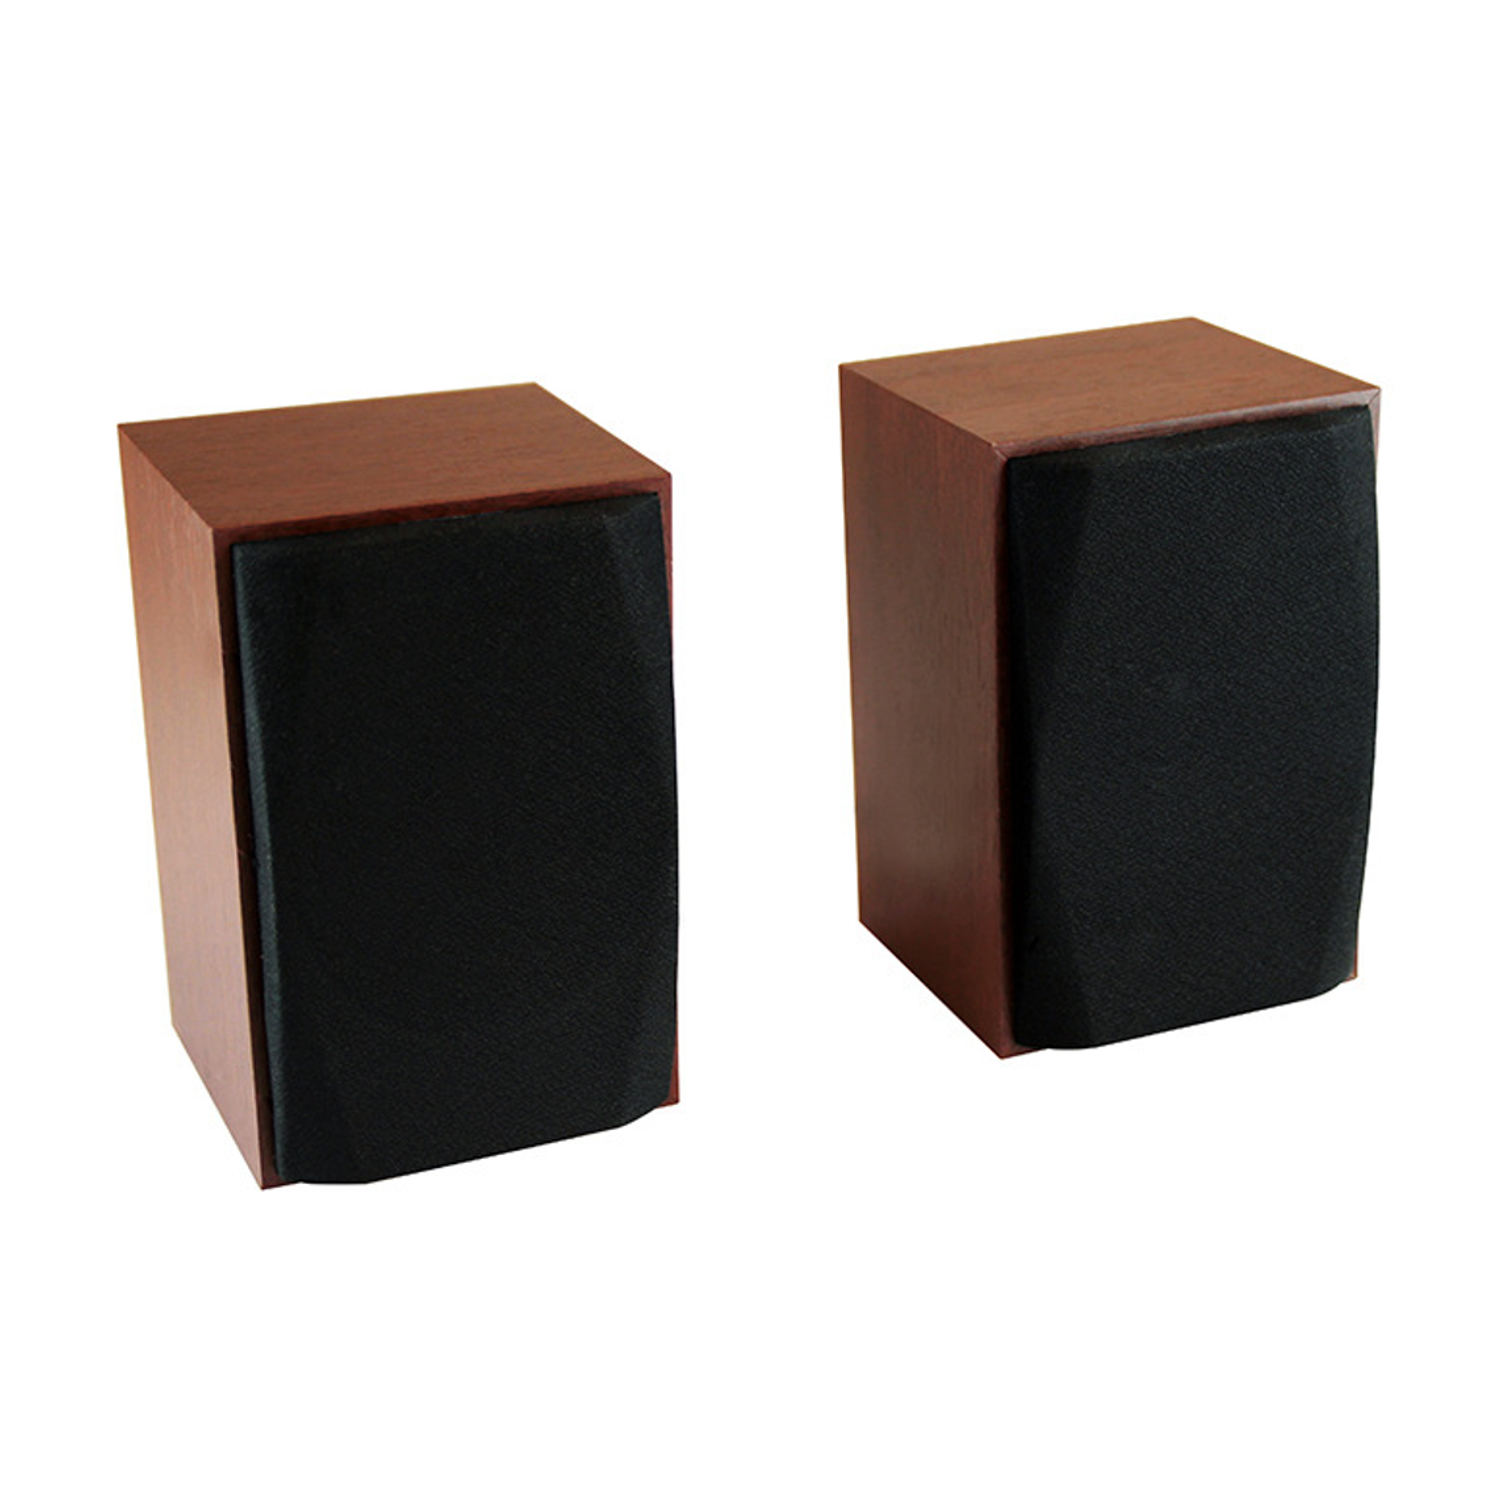 lautsprecher set system stereo 10w rms holz geh use usb. Black Bedroom Furniture Sets. Home Design Ideas